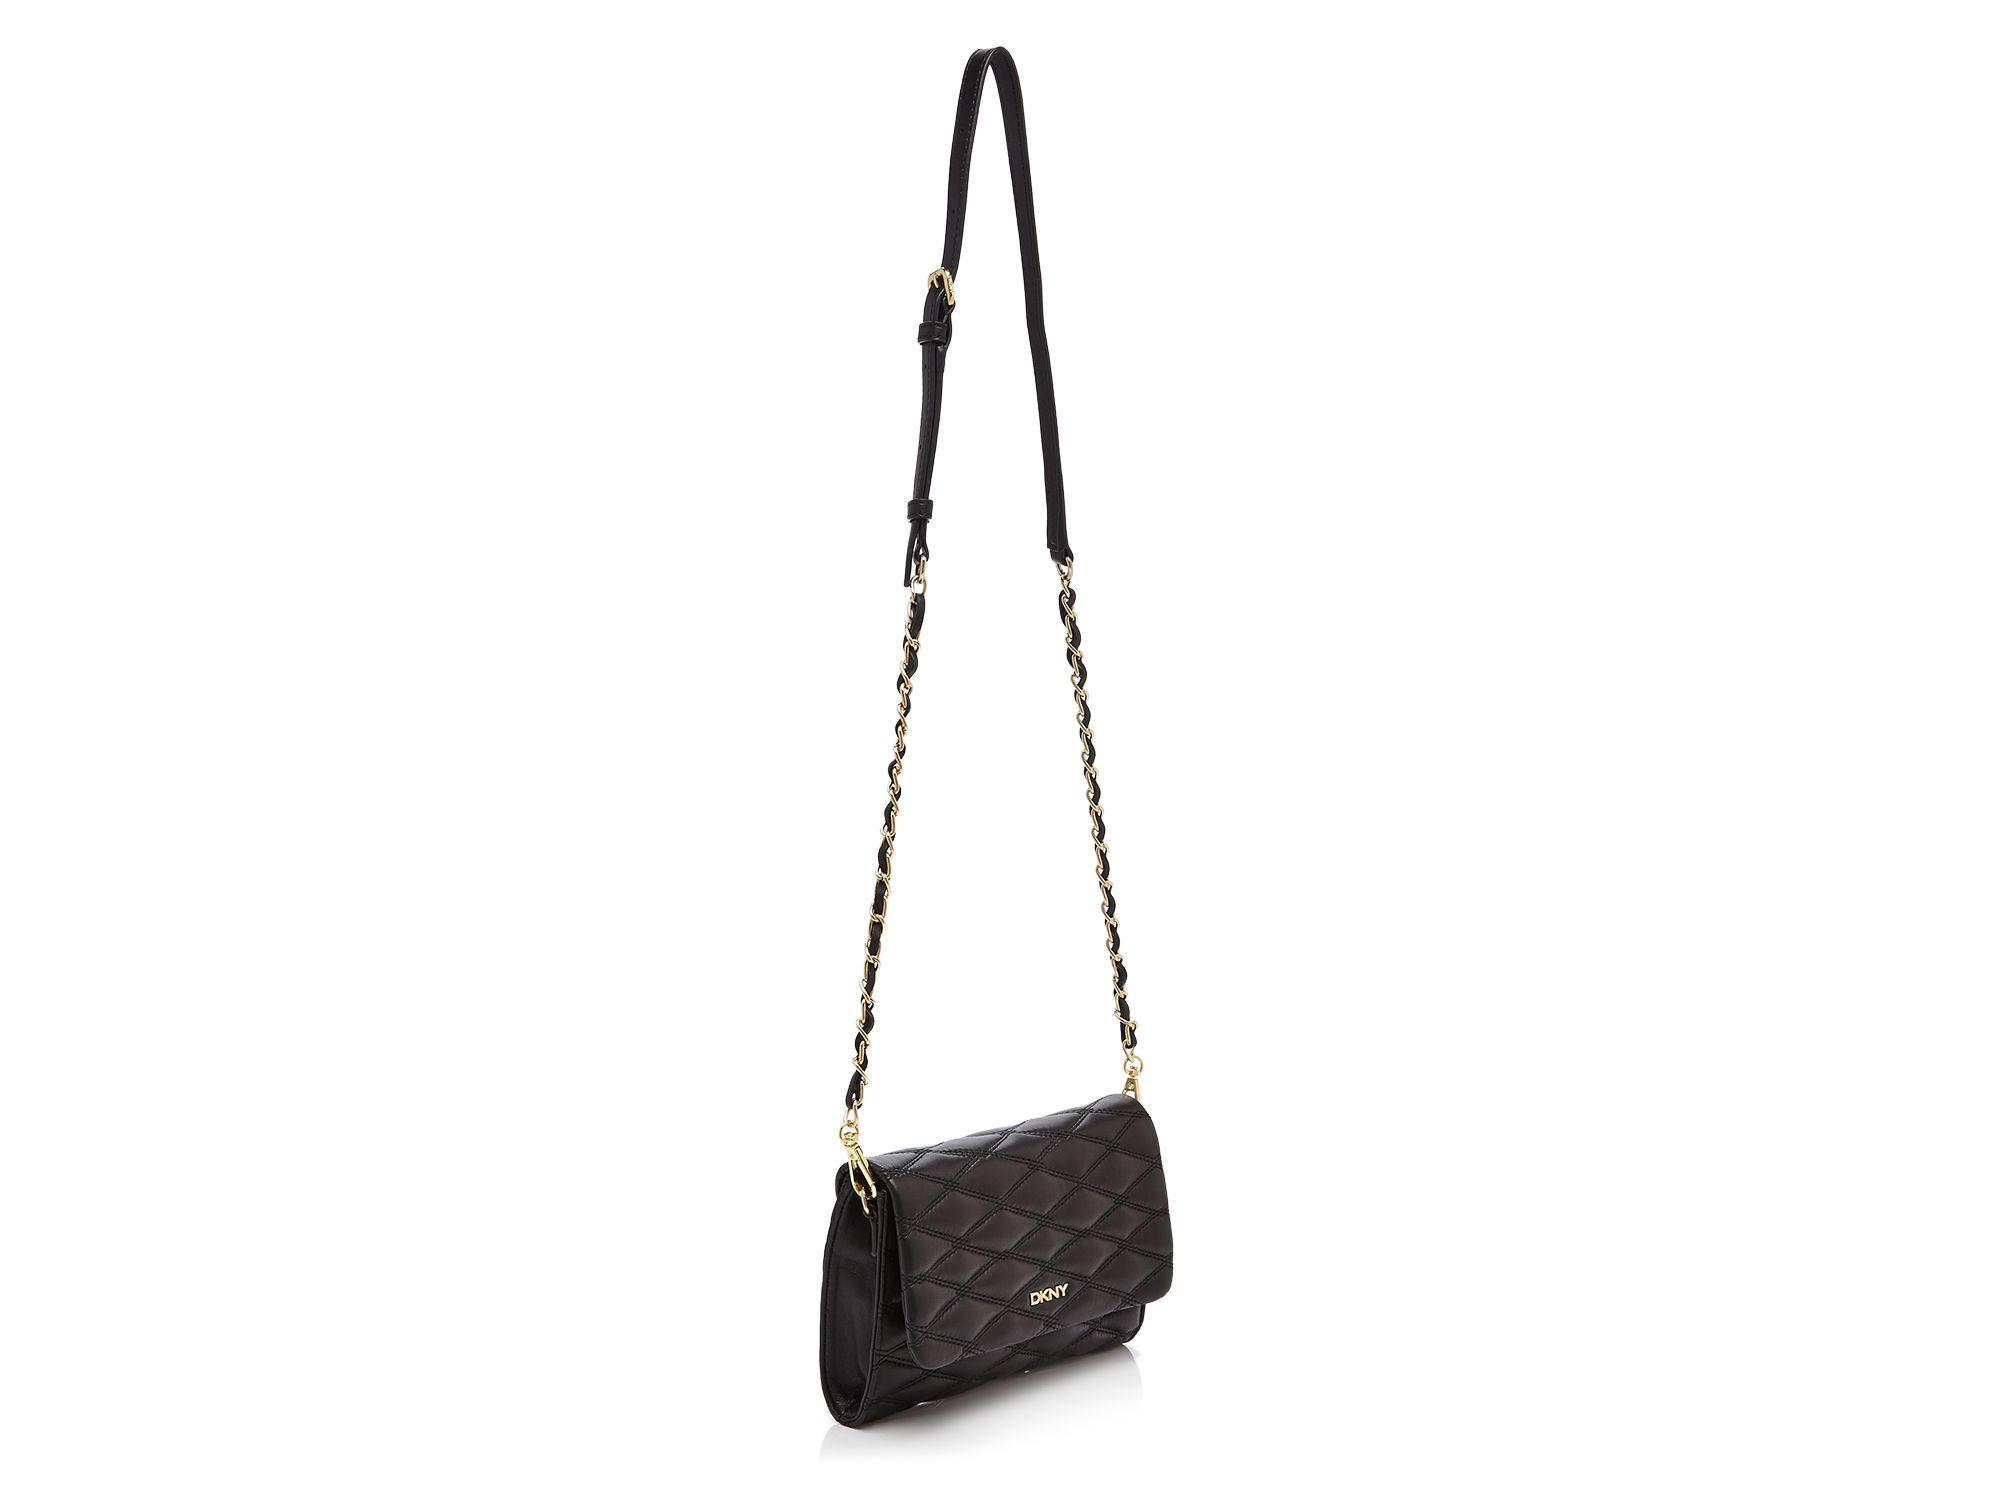 Lyst - Dkny Gansevoort Quilted Nappa Small Flap Crossbody in Black : dkny black quilted purse - Adamdwight.com